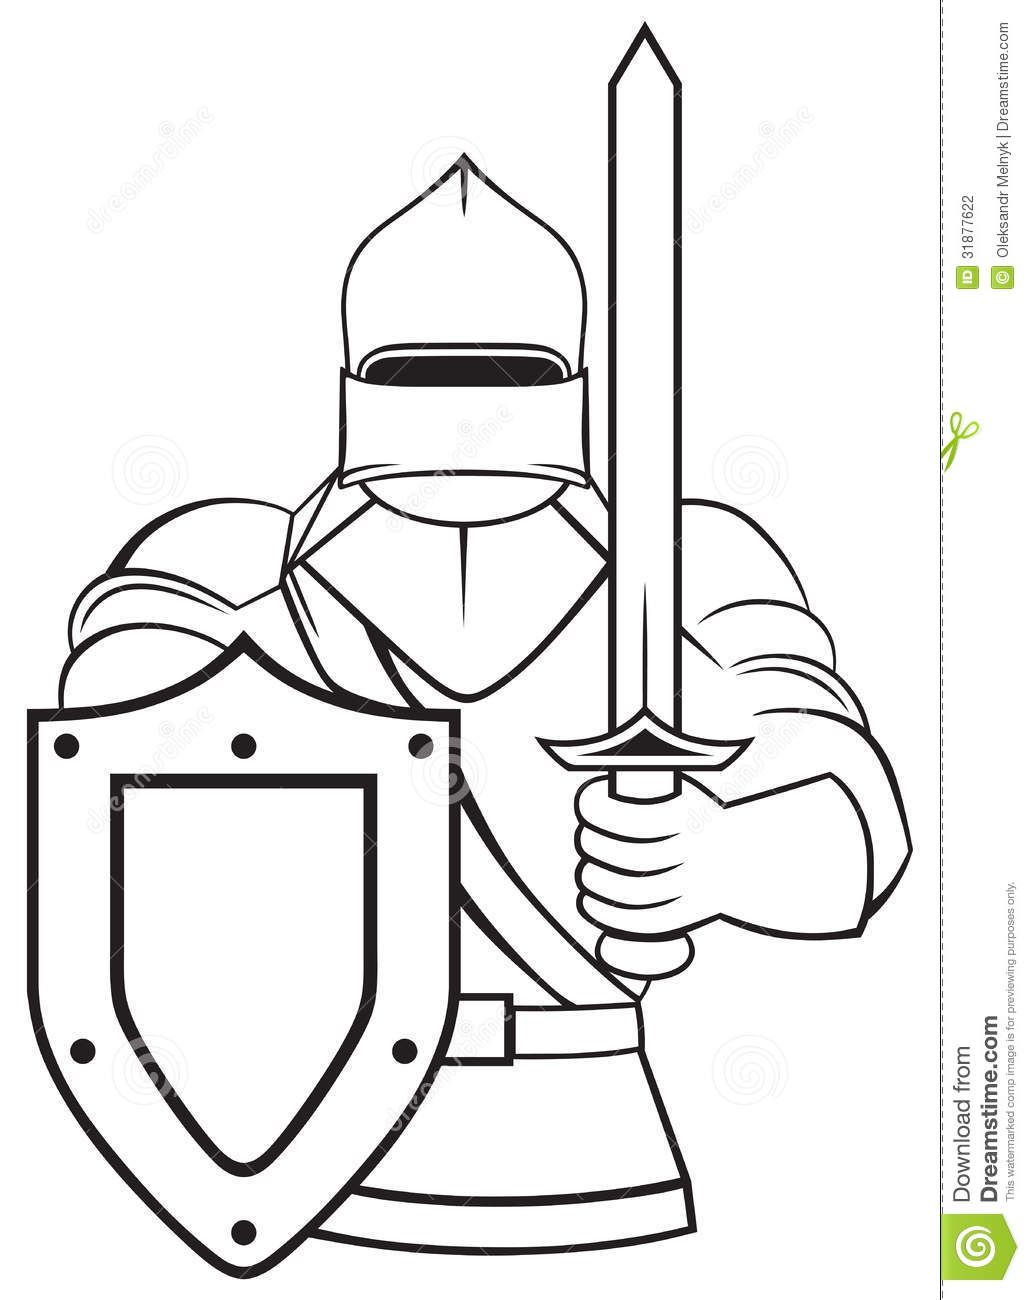 Medival children playing clipart black and white jpg royalty free Cool Black and White line art | Medieval Knight Stock ... jpg royalty free